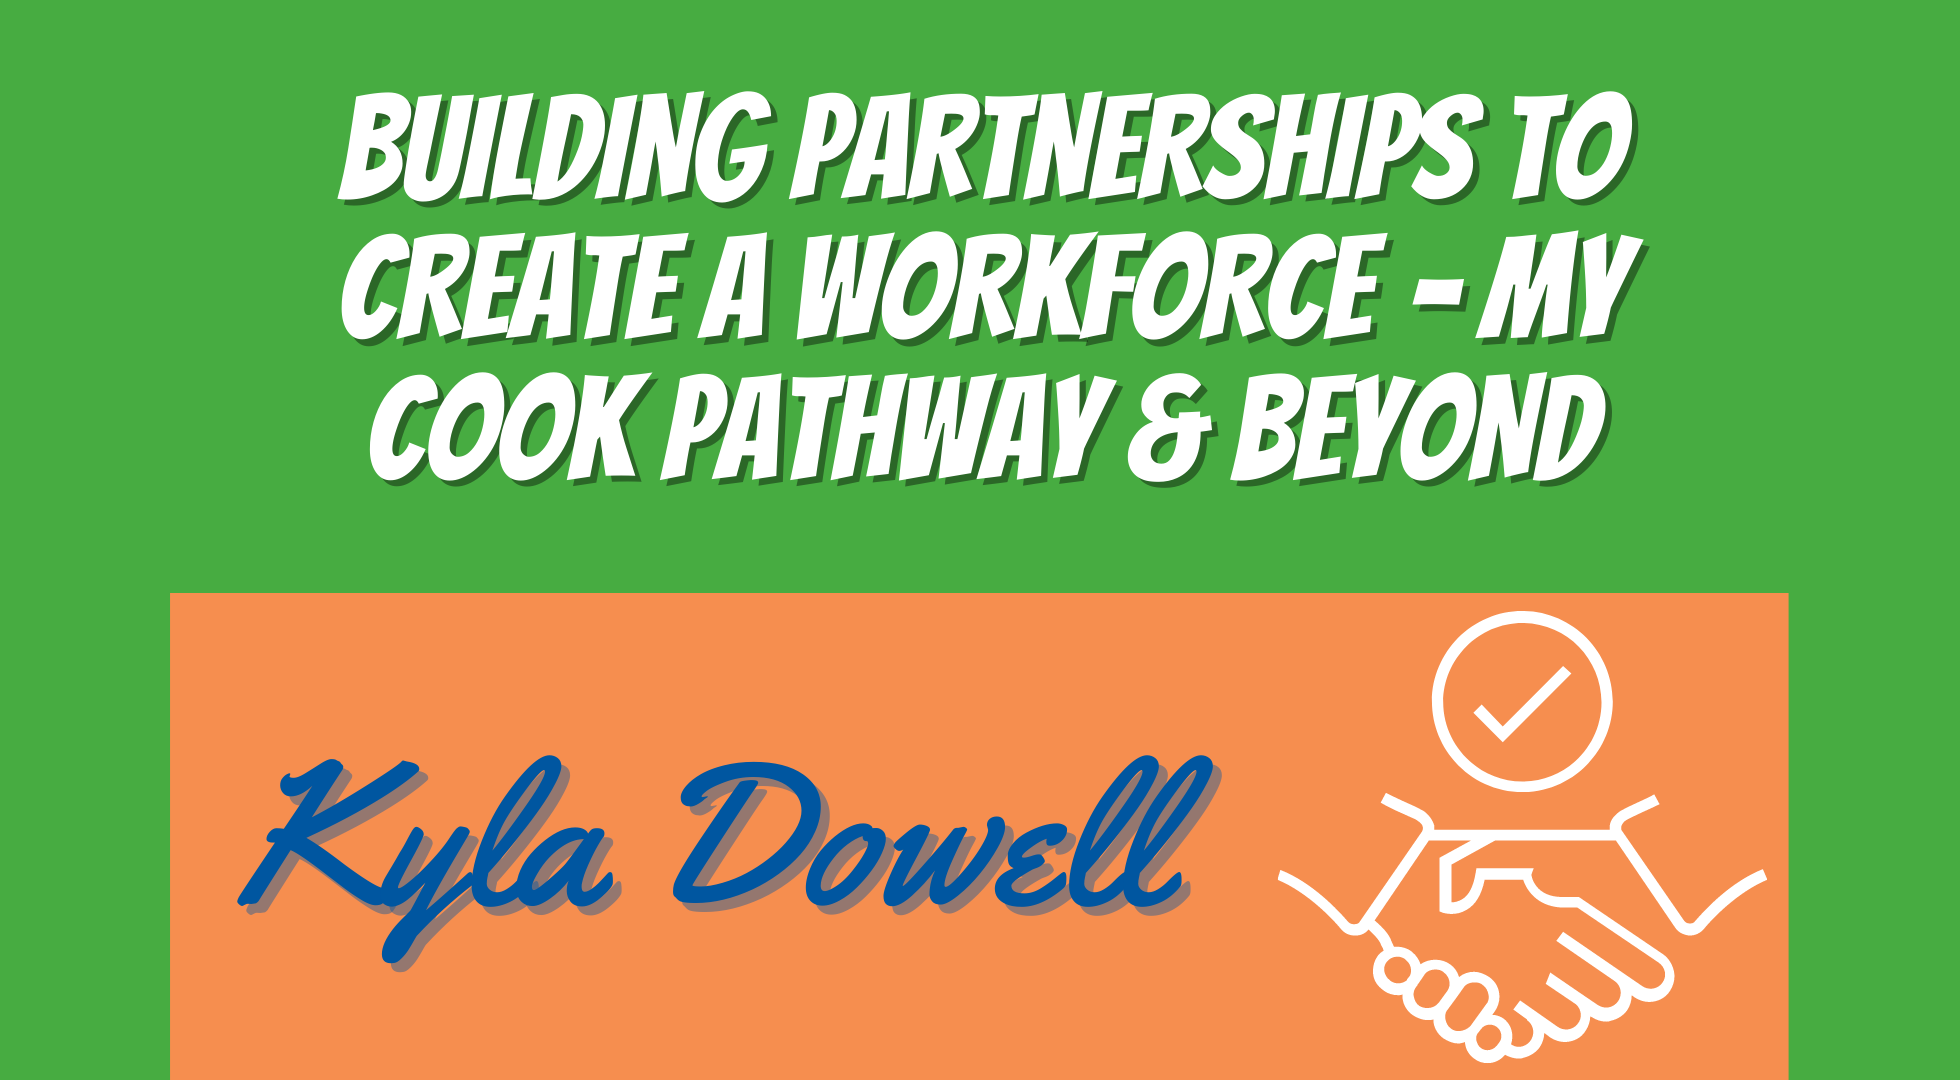 Building Partnerships to Create a Workforce – My Cook Pathway & Beyond